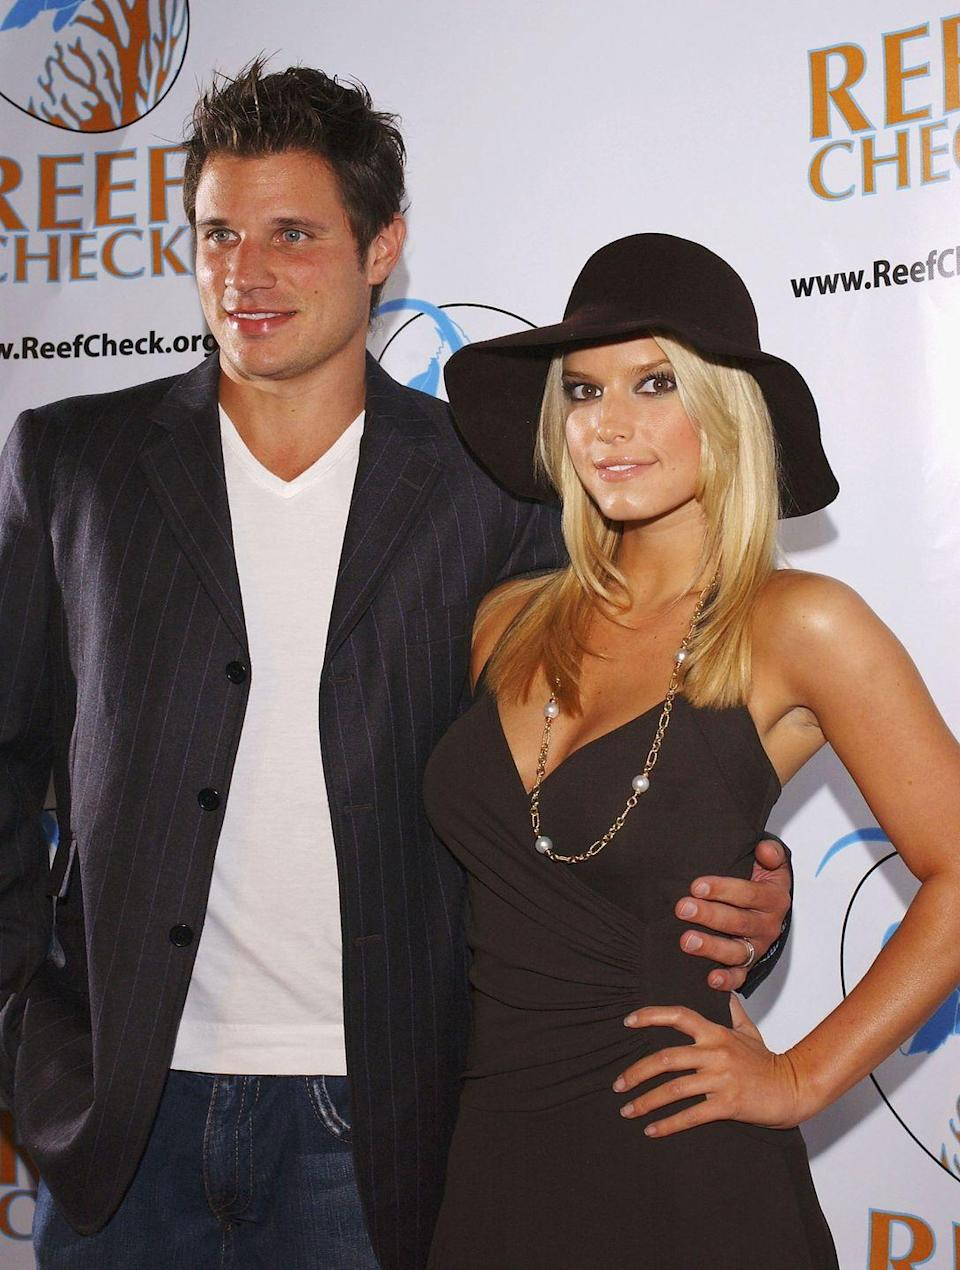 "<p>Jessica Simpson and Nick Lachey <a href=""http://www.eonline.com/news/866236/why-jessica-simpson-and-nick-lachey-ever-married-each-other-in-the-first-place-and-then-did-a-reality-show"" rel=""nofollow noopener"" target=""_blank"" data-ylk=""slk:tied the knot"" class=""link rapid-noclick-resp"">tied the knot</a> on October 26, 2002, which spawned the reality show <em>Newlyweds: Nick and Jessica</em>. The show became a pop culture phenomenon, but the pair split in 2006. </p>"